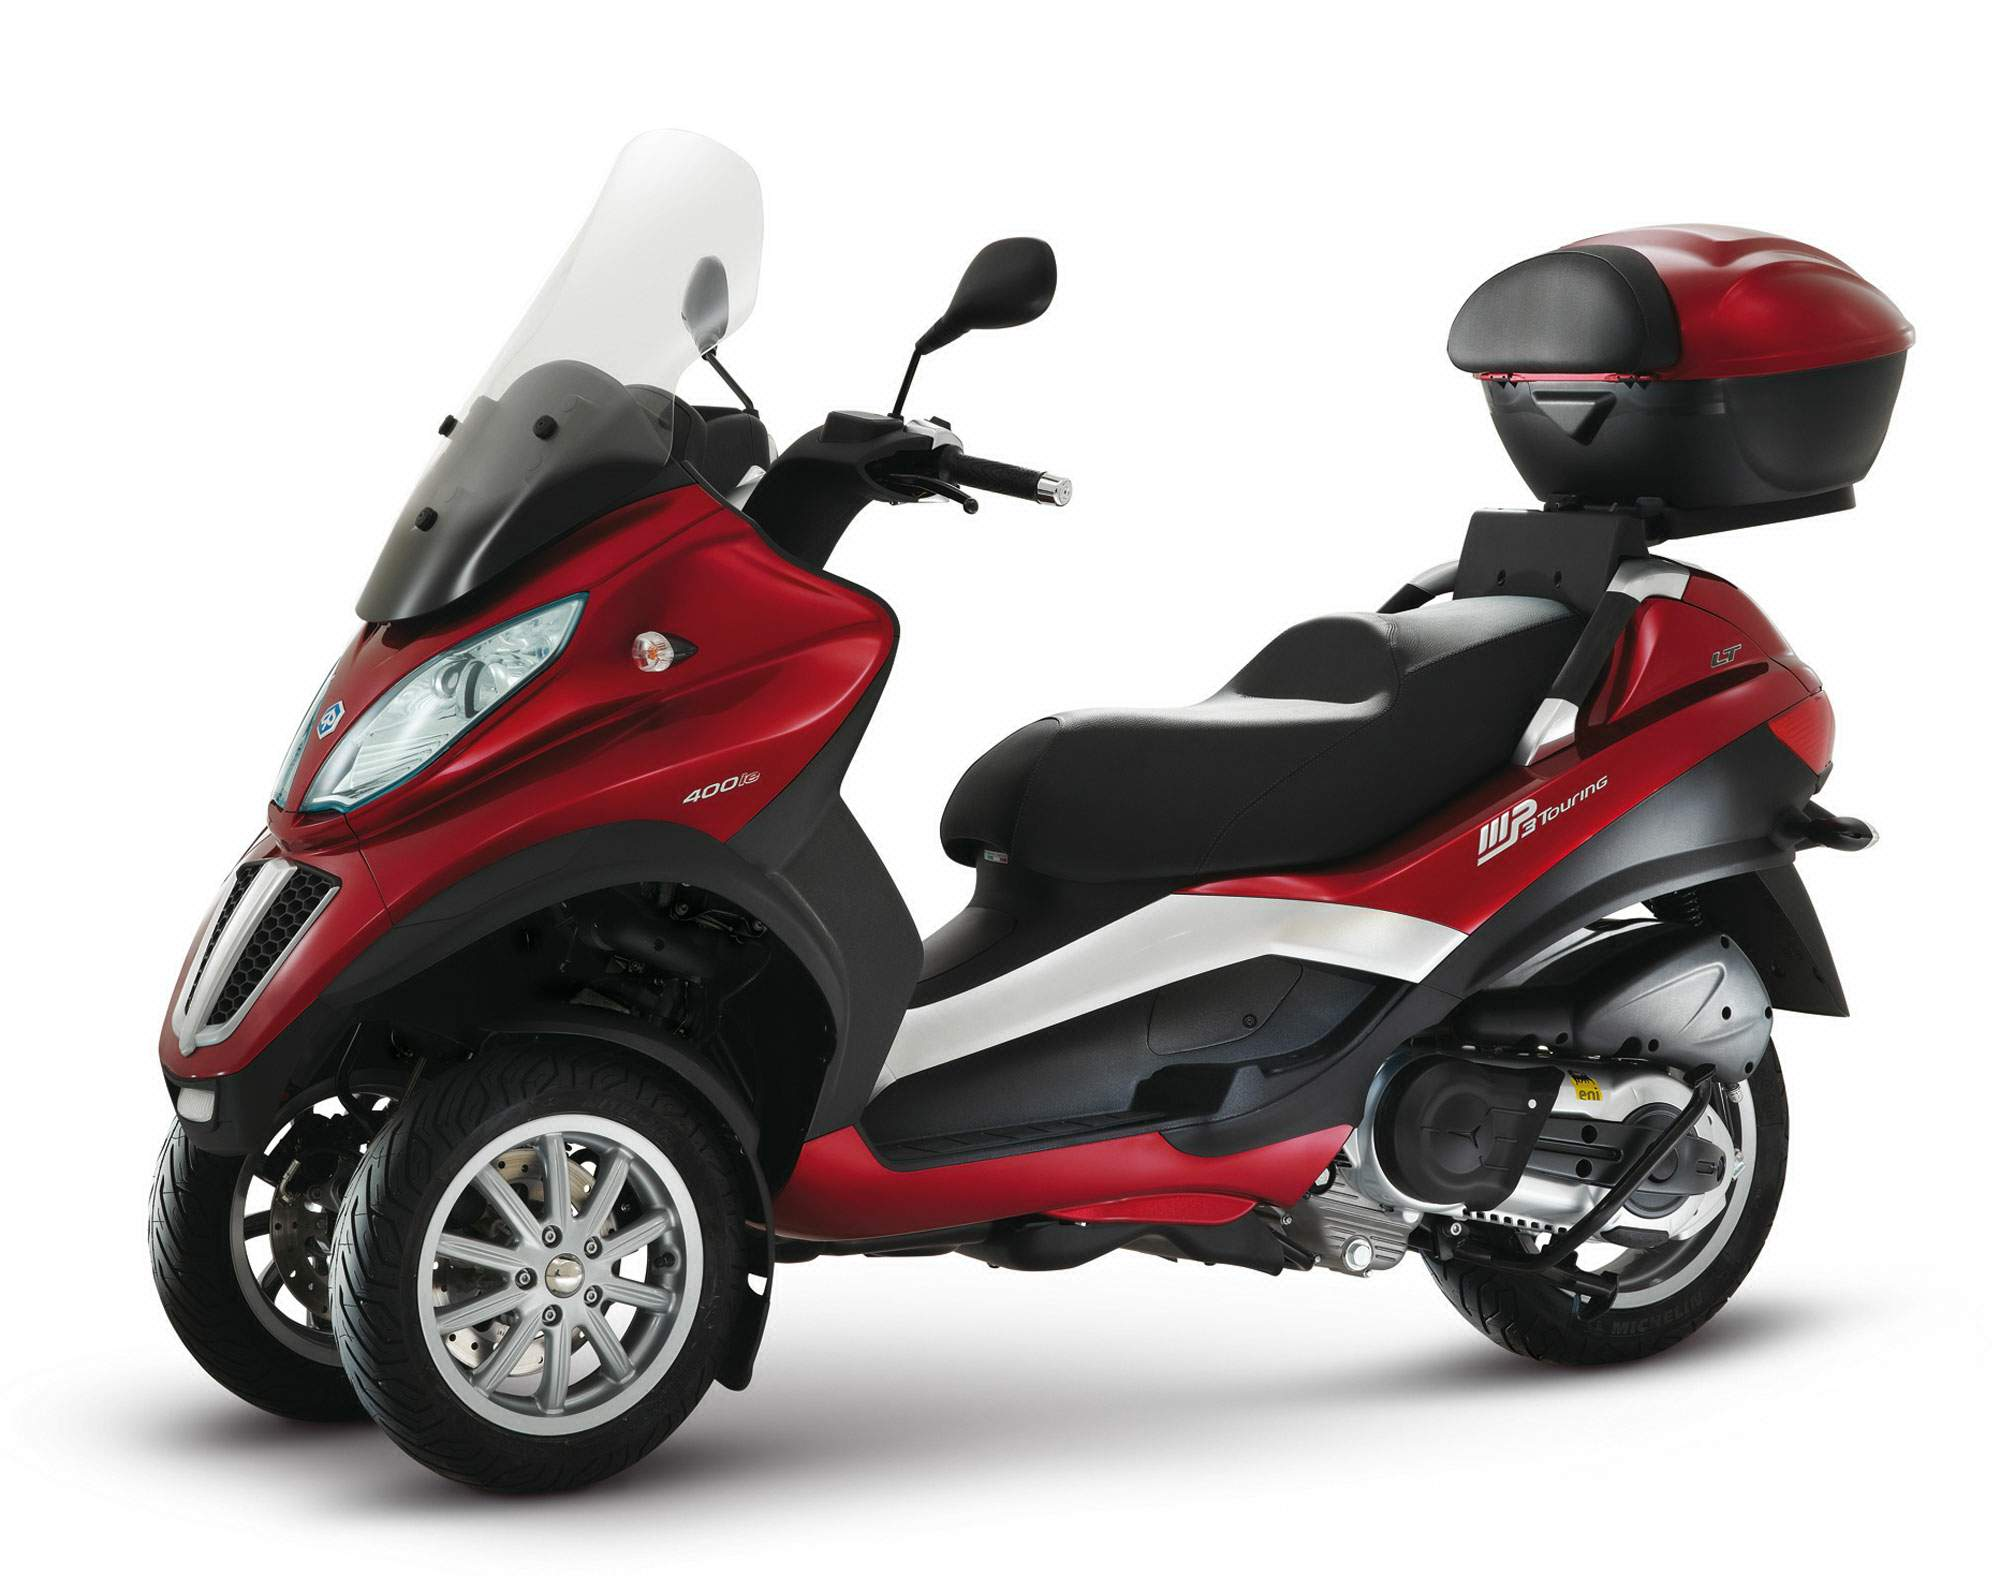 Piaggio MP3 Touring 125 2012 images #120334